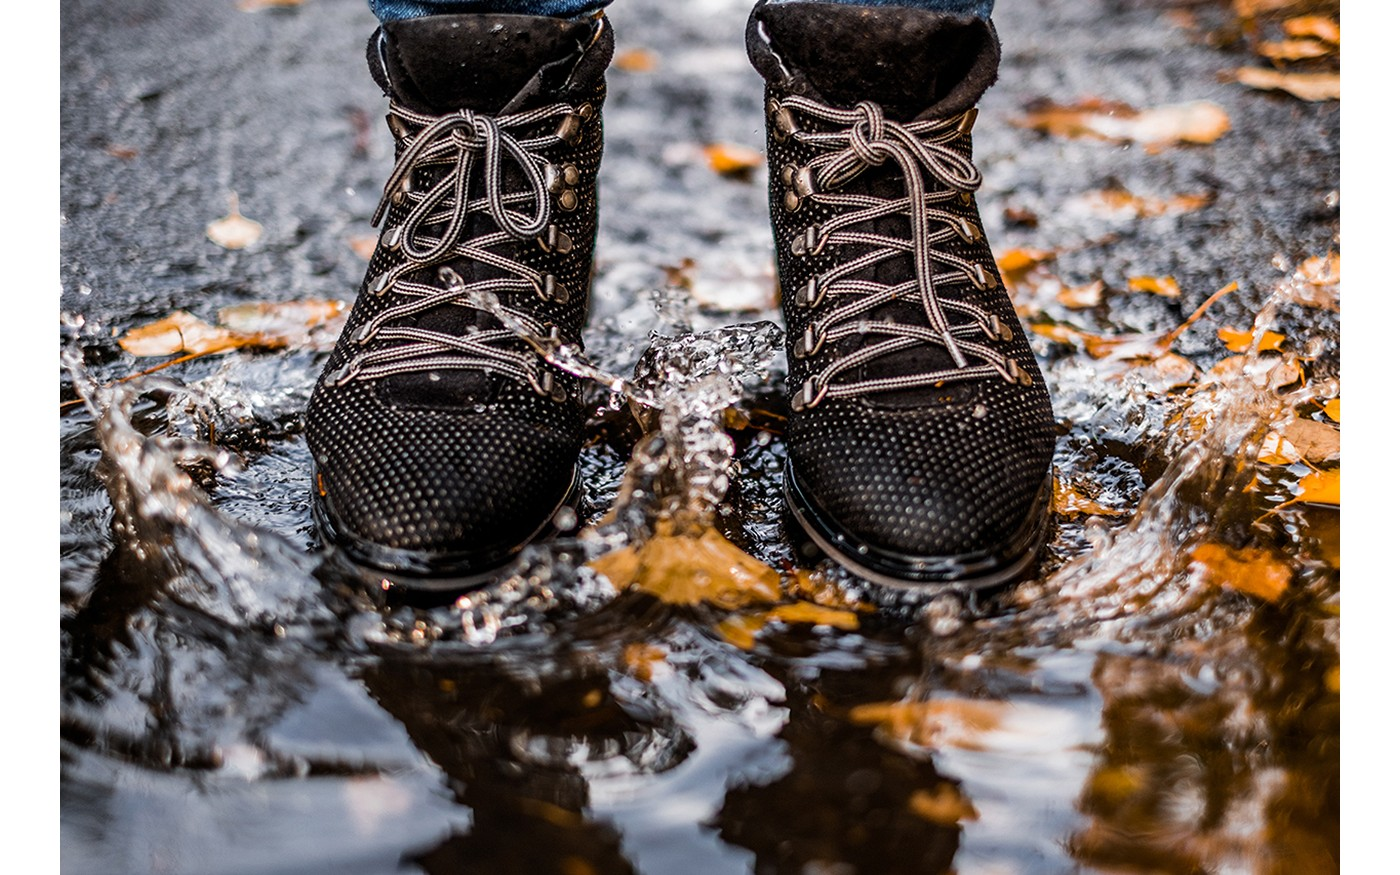 Person running through a puddle of water